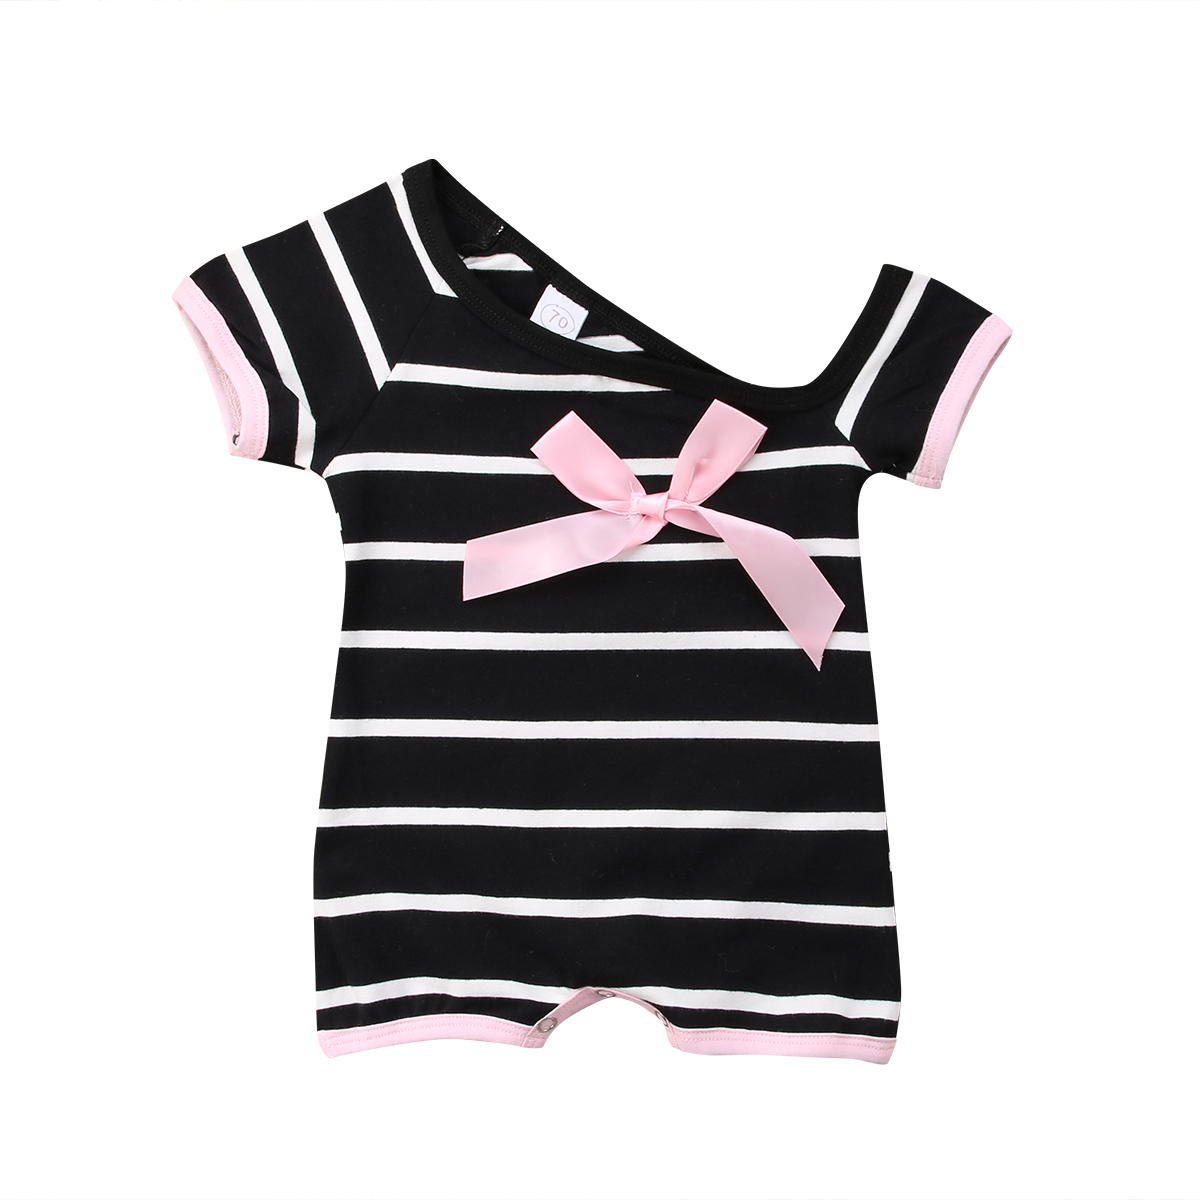 0-3T Soft Cotton Newborn Baby Girl Off Shoulder Bow Jumpsuit Bodysuit Black/White Stripe Clothes Outfit